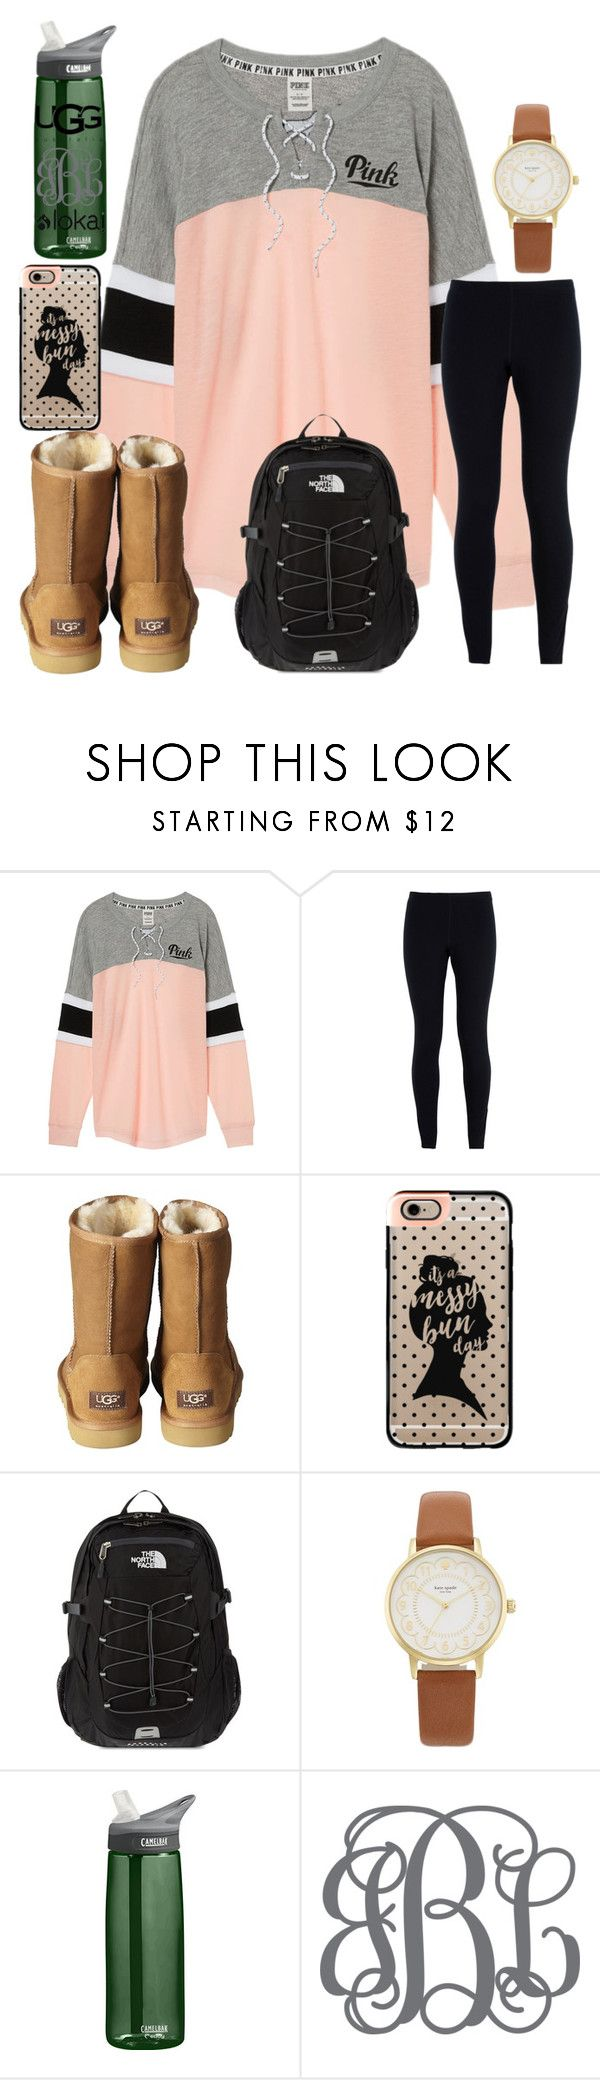 """""""only two days of school this week!!!!"""" by ctrygrl1999 ❤ liked on Polyvore featuring Victoria's Secret, NIKE, UGG Australia, Casetify, The North Face, Kate Spade and CamelBak"""